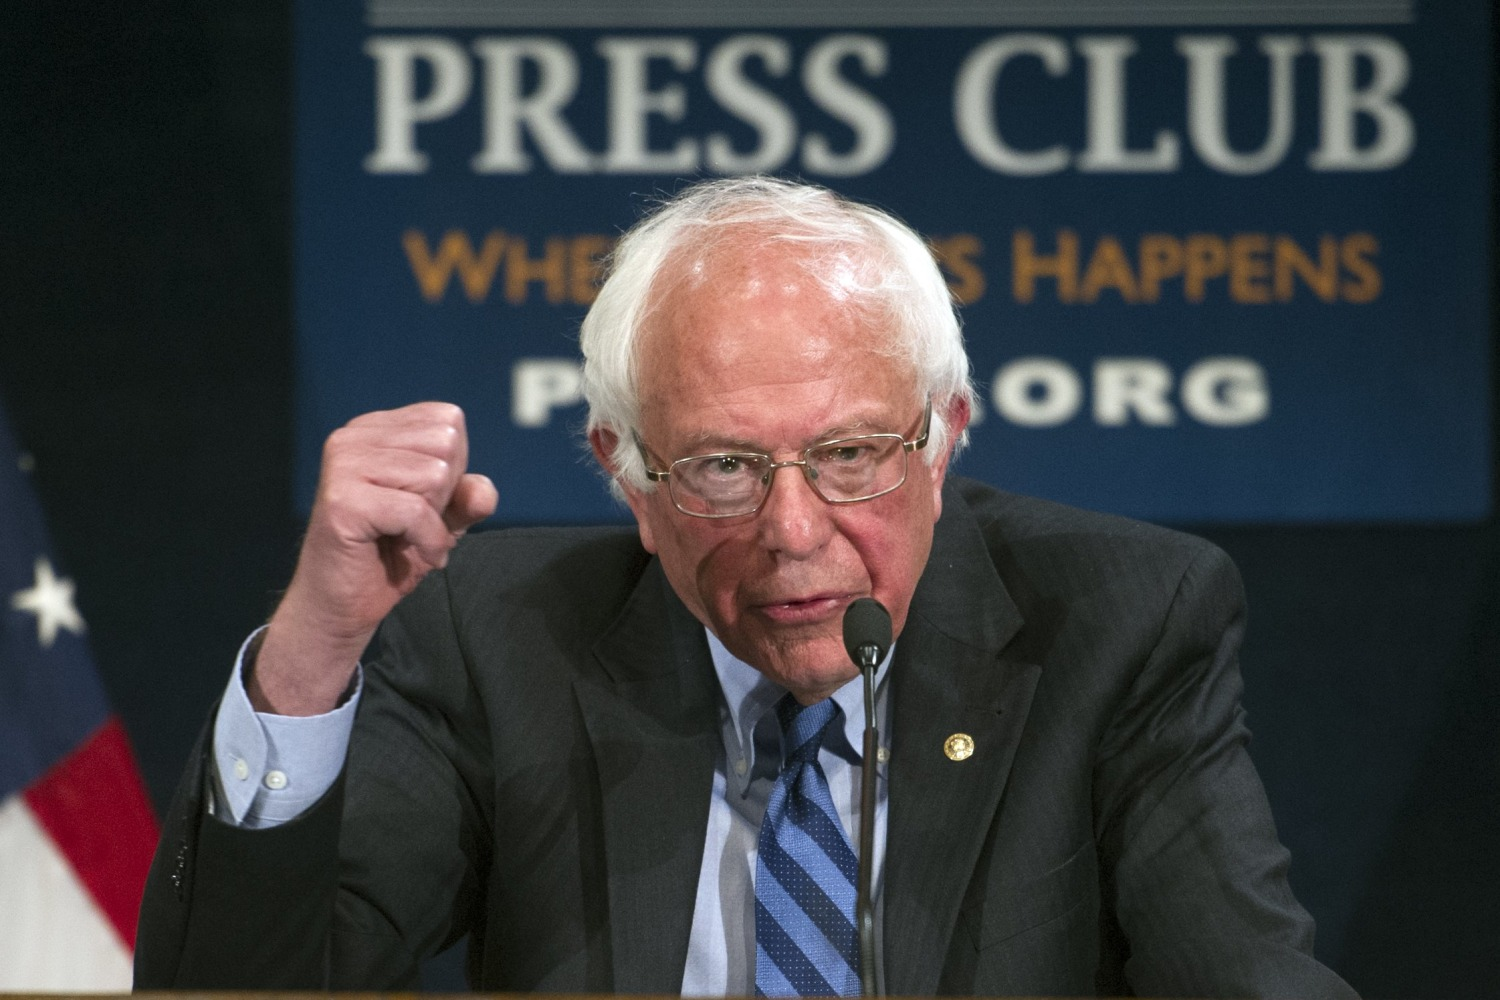 sanders insists he can still win the democratic nomination nbc news